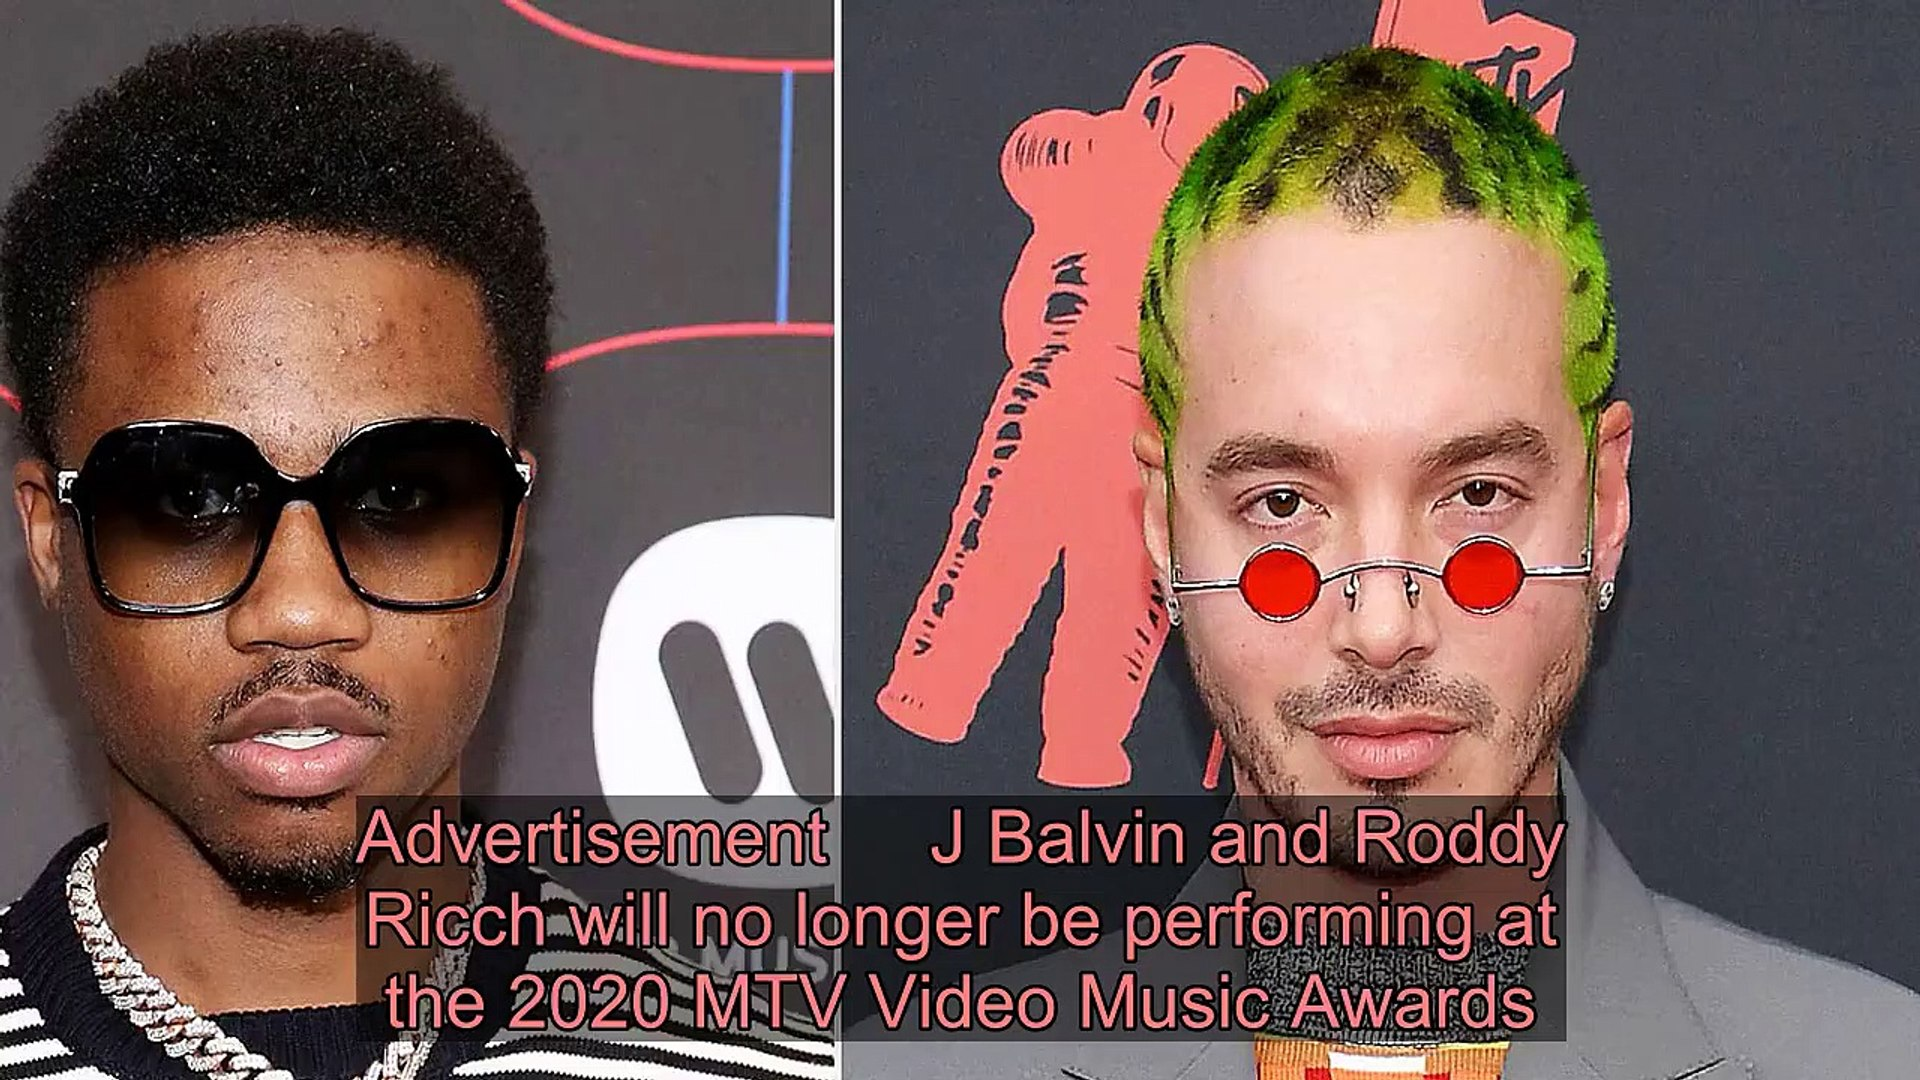 J Balvin and Roddy Ricch Drop Out of 2020 MTV VMAs Performance Lineup